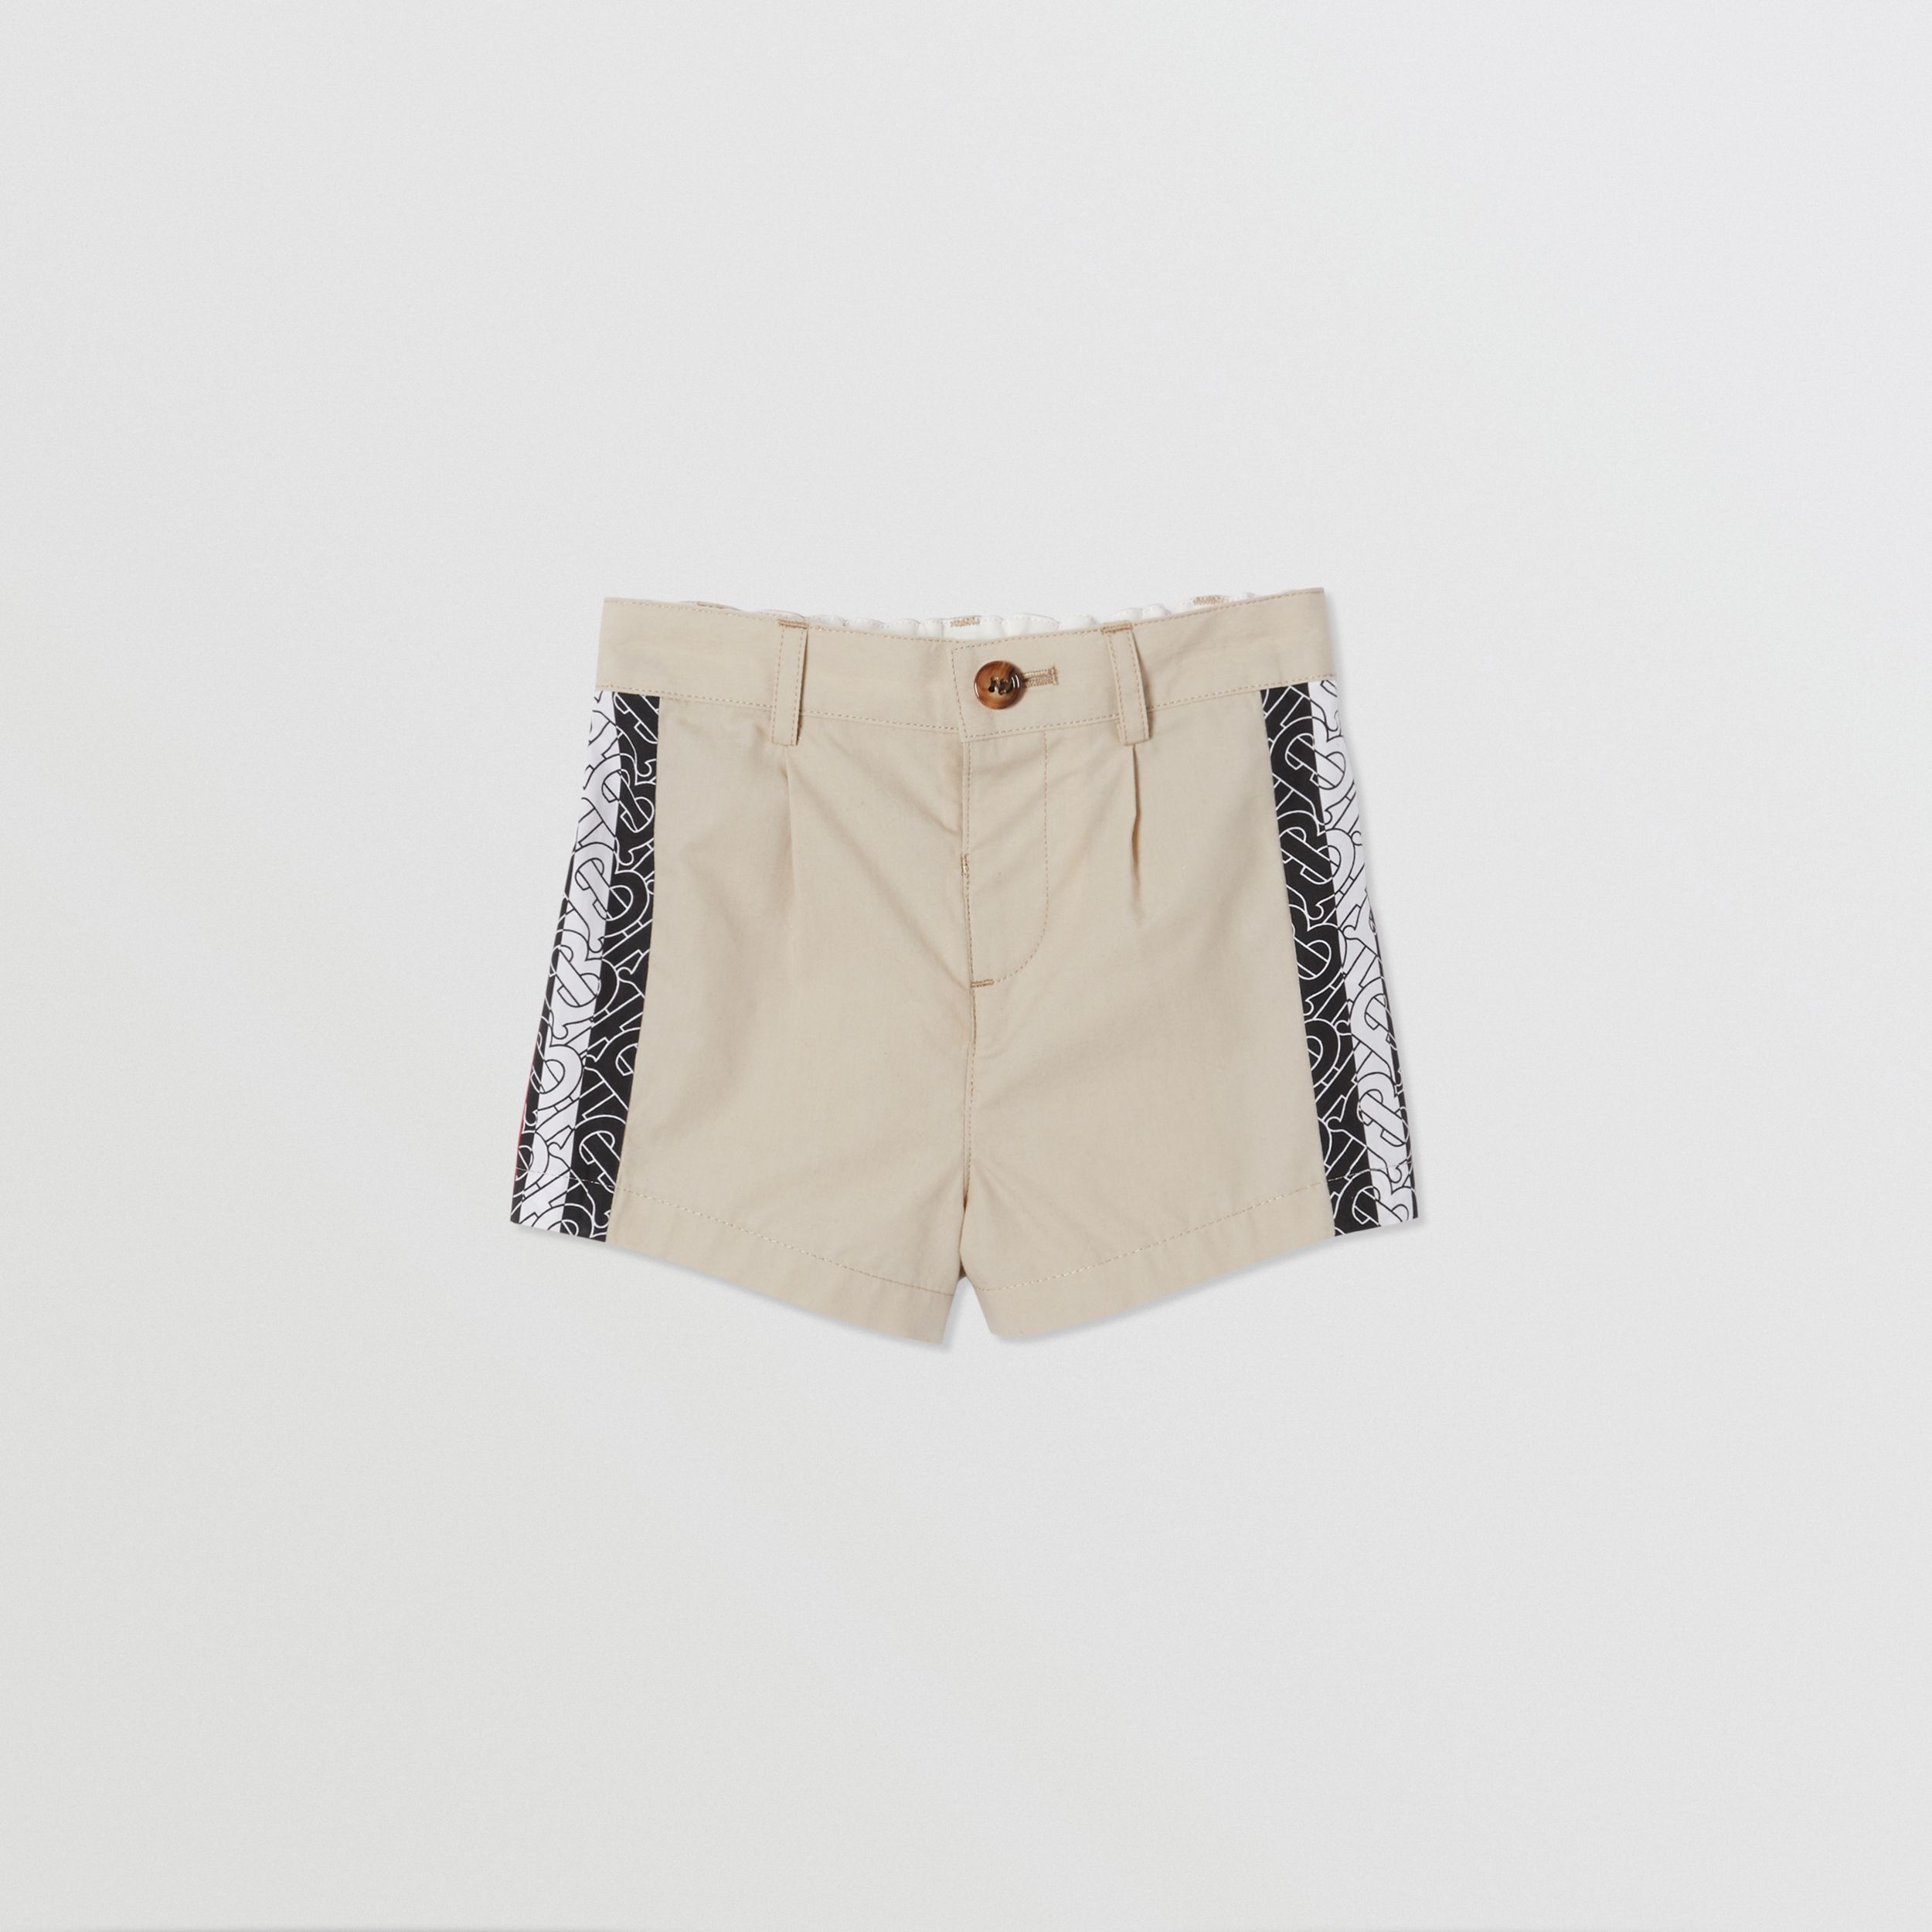 Monogram Stripe Print Cotton Tailored Shorts in Stone - Children | Burberry - 1